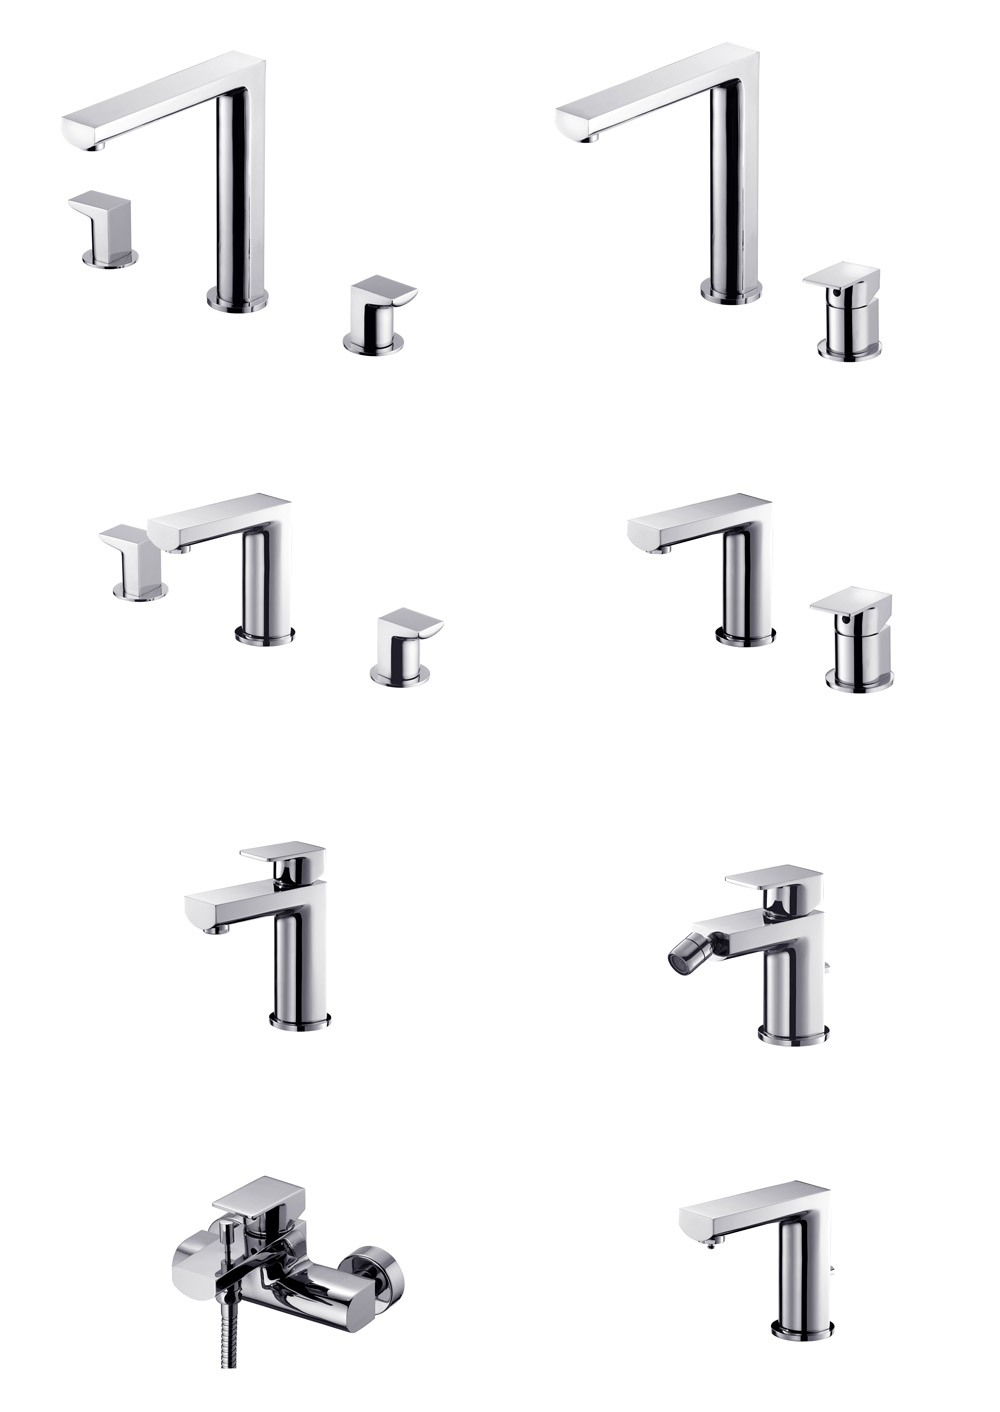 ARCH Series Faucet / SHENG TAI BRASSWARE CO., LTD.